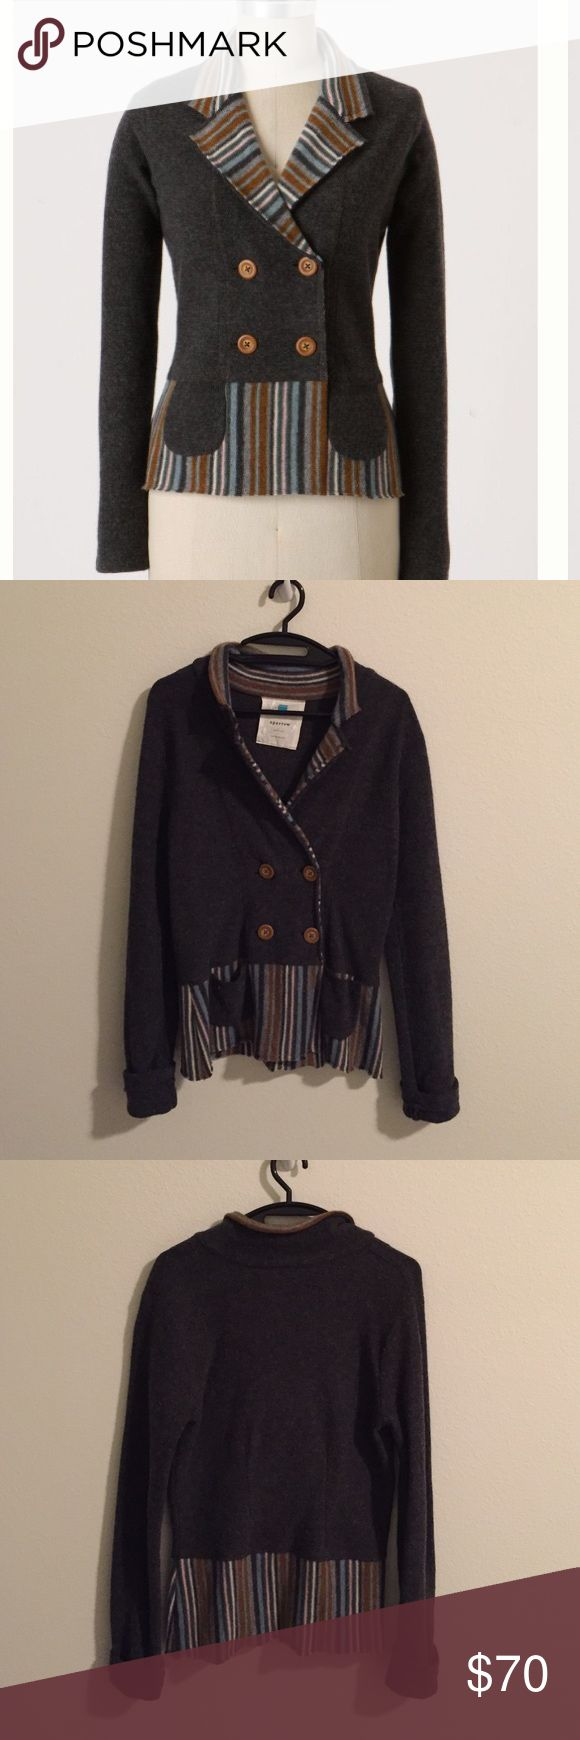 Statement style hpAnthro In-The-Lines Cardigan Anthropologie In-The-Lines Cardigan. Fun front pockets and pin-stripe details. Front button closure. Lambswool. In excellent condition. Anthropologie Jackets & Coats Blazers